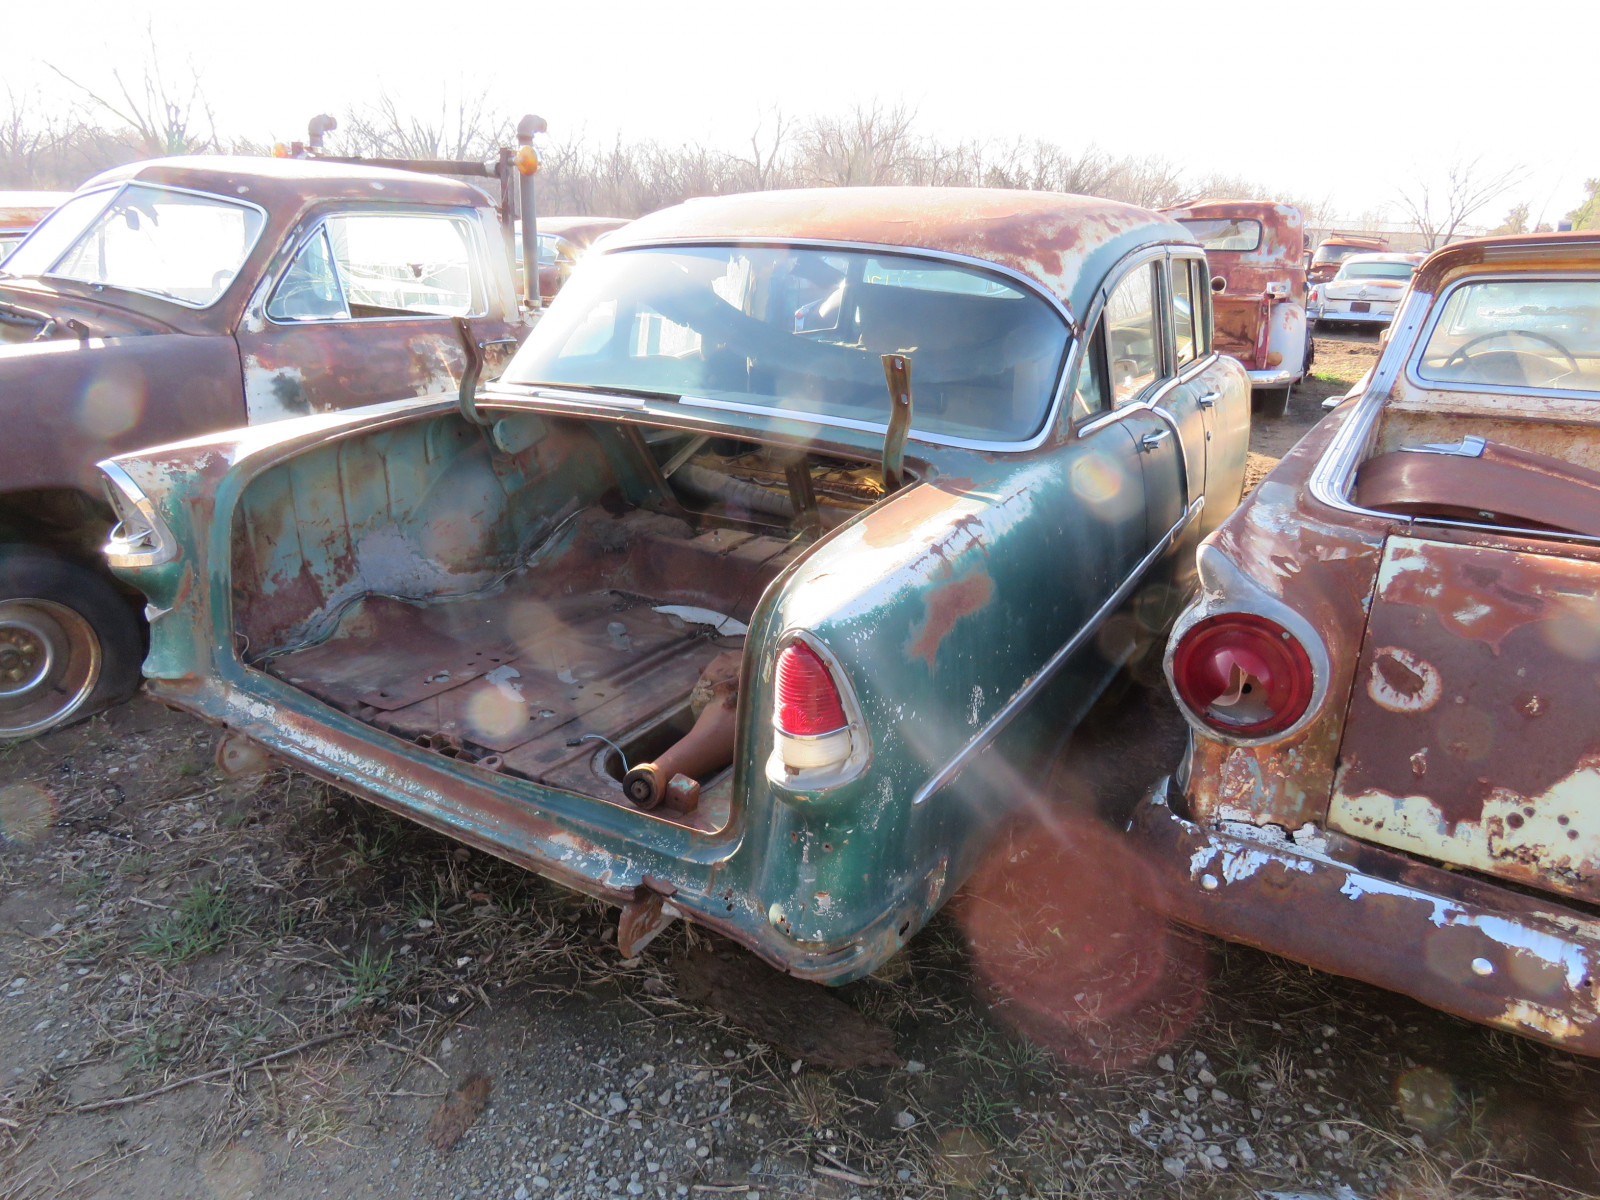 1955 Chevrolet 4dr Sedan for parts - Image 4